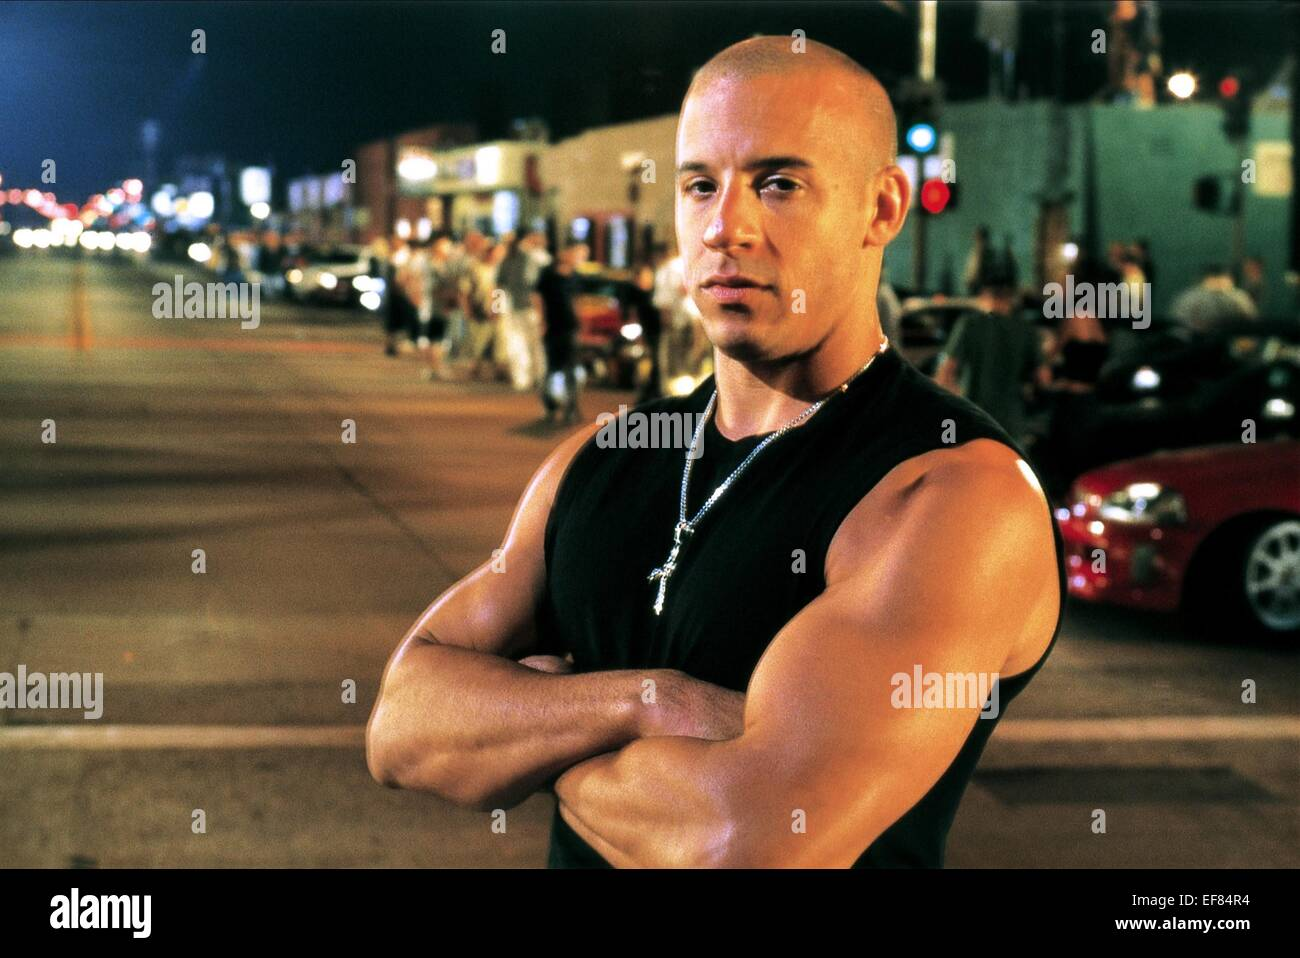 vin diesel the fast and the furious 2001 stock photo 78240712 alamy. Black Bedroom Furniture Sets. Home Design Ideas